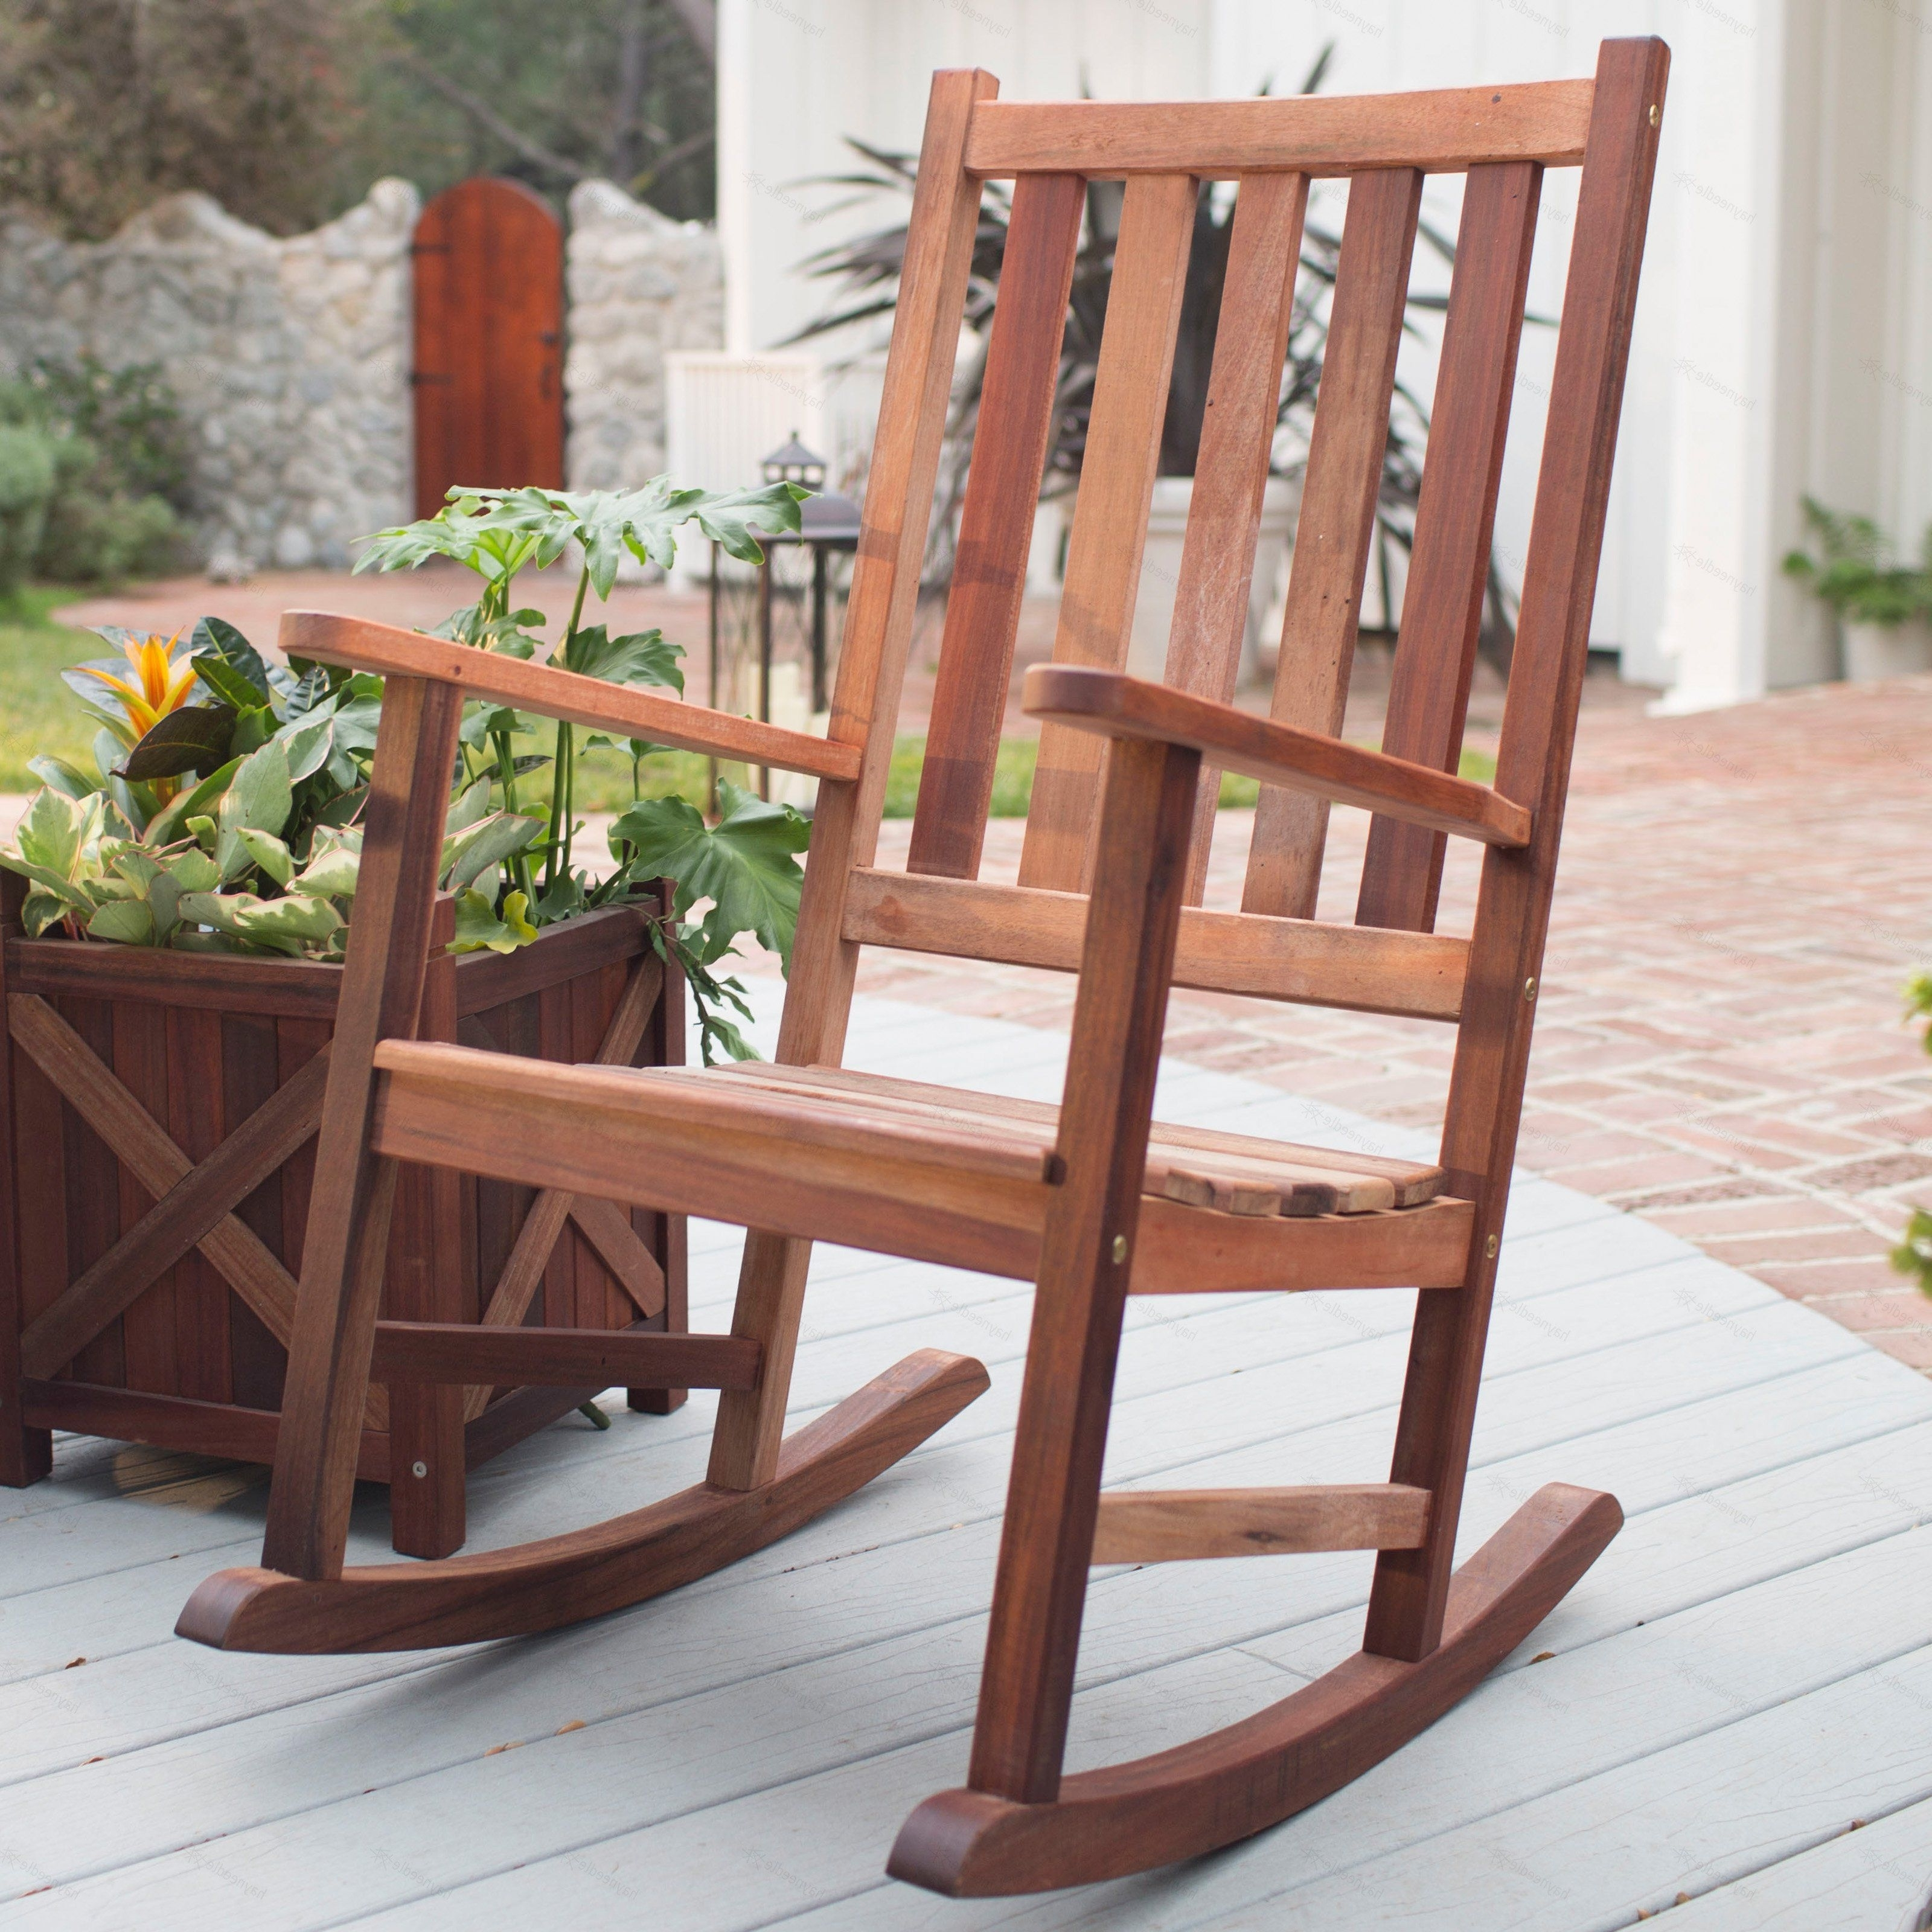 Latest Belham Living Richmond Heavy Duty Outdoor Wooden Rocking Chair Within Outdoor Rocking Chairs (View 8 of 20)